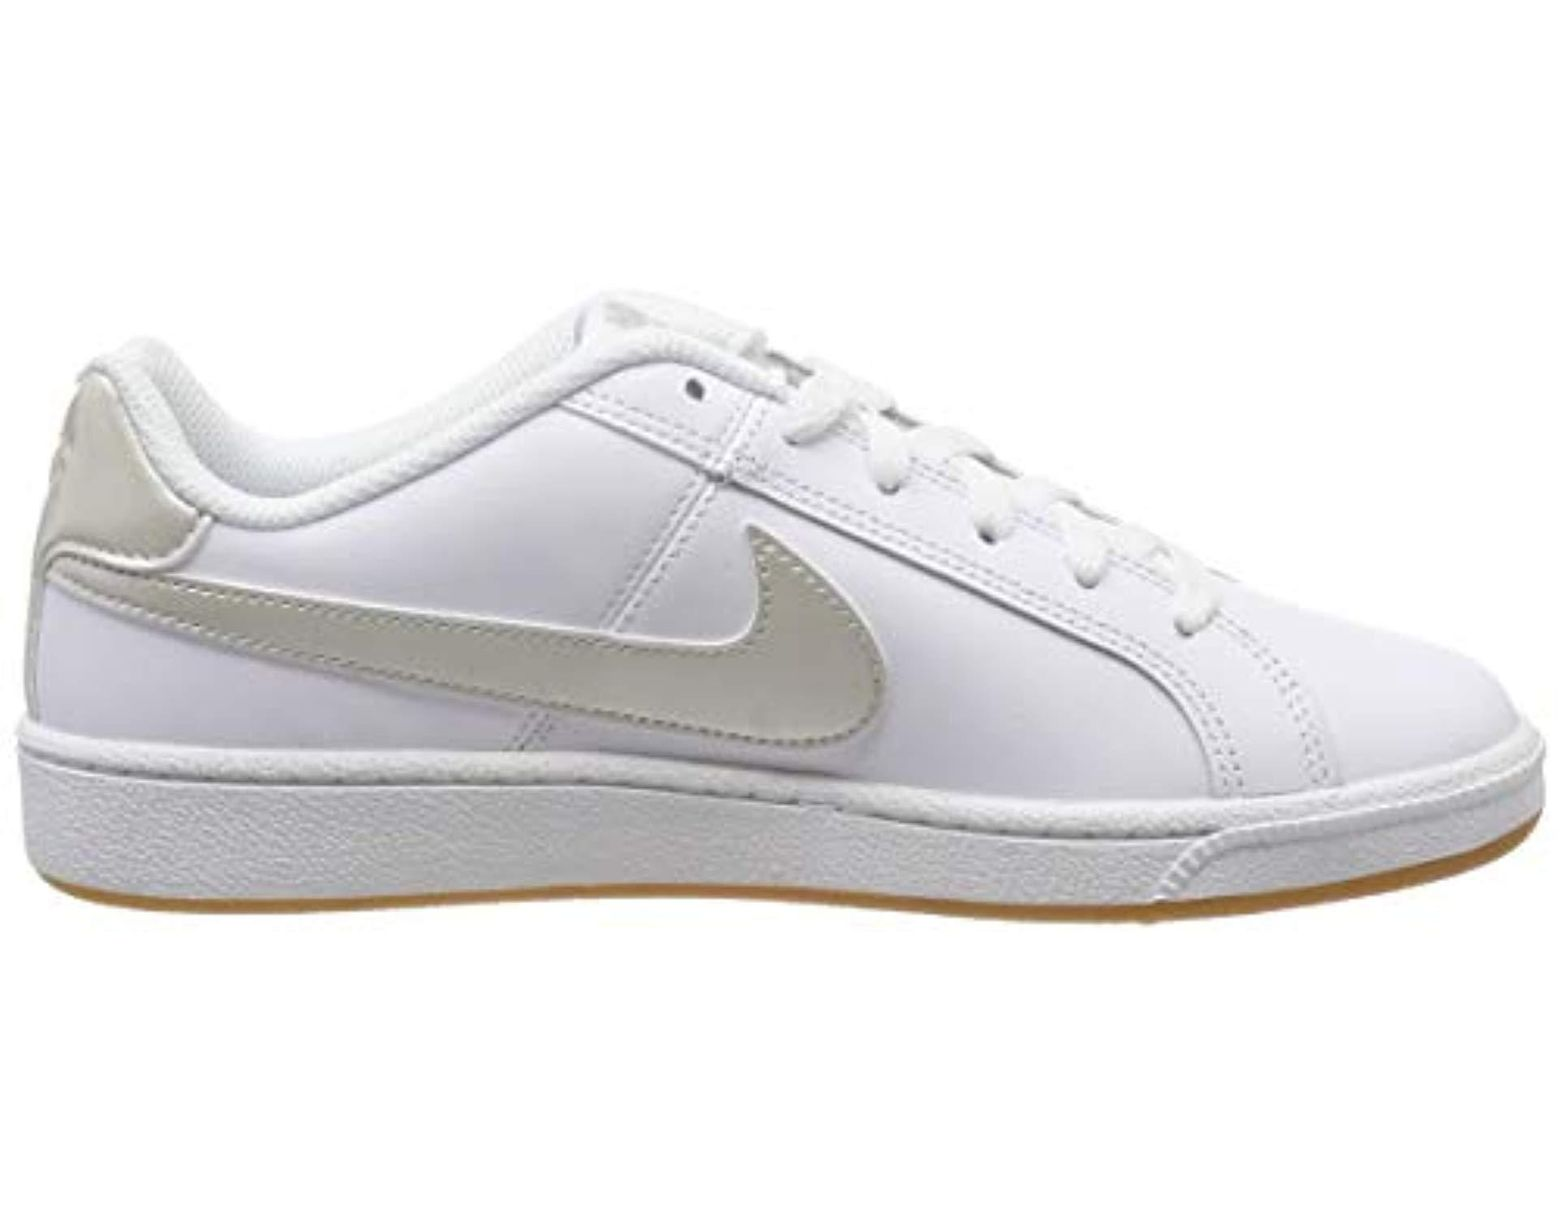 Royale Shoes Wmns 8Lyst In Court White Save Gymnastics Nike ebWD9YEI2H